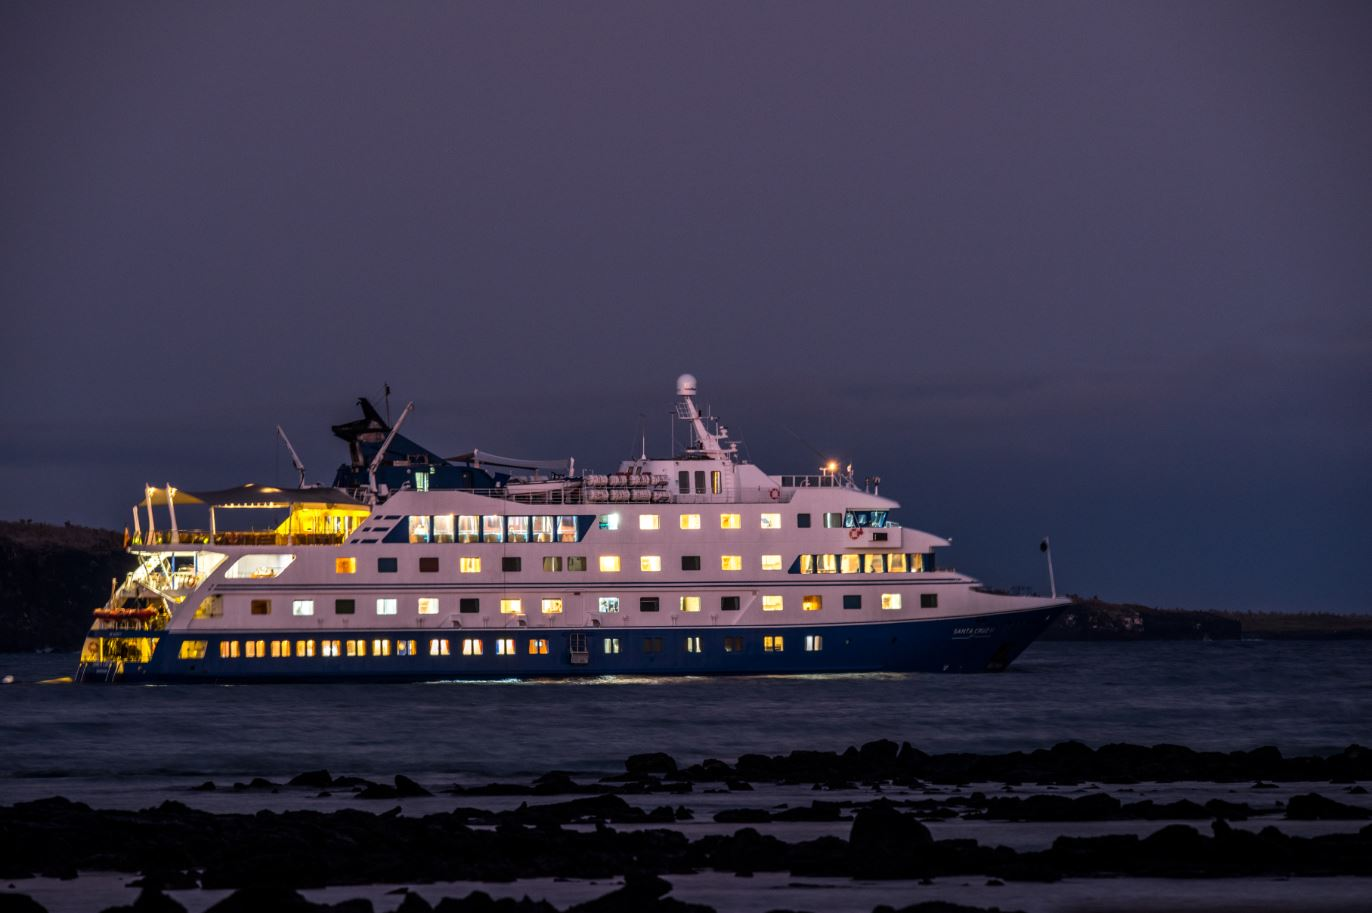 View of Santa Cruz Cruise at night time.